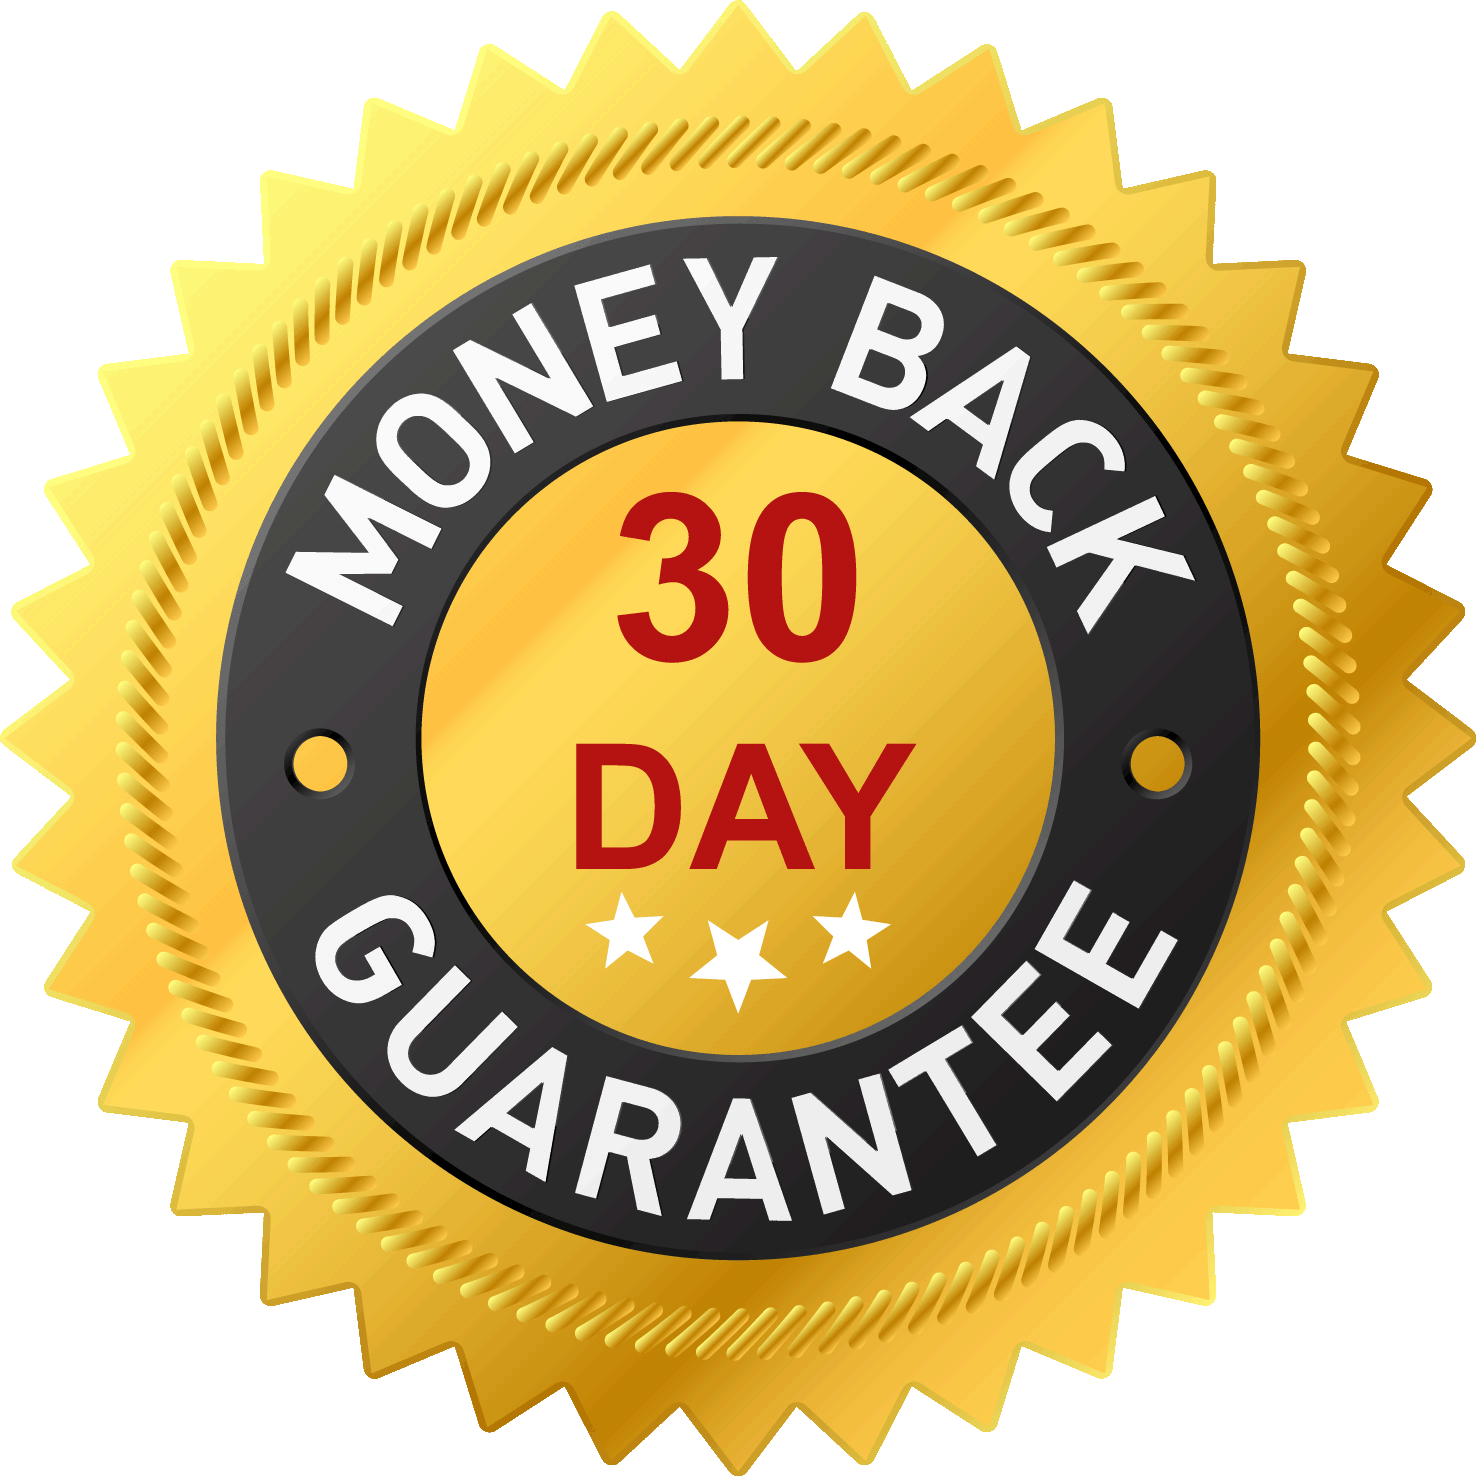 Money Back 30 Day Guarantee Logo RestauriRaia.com